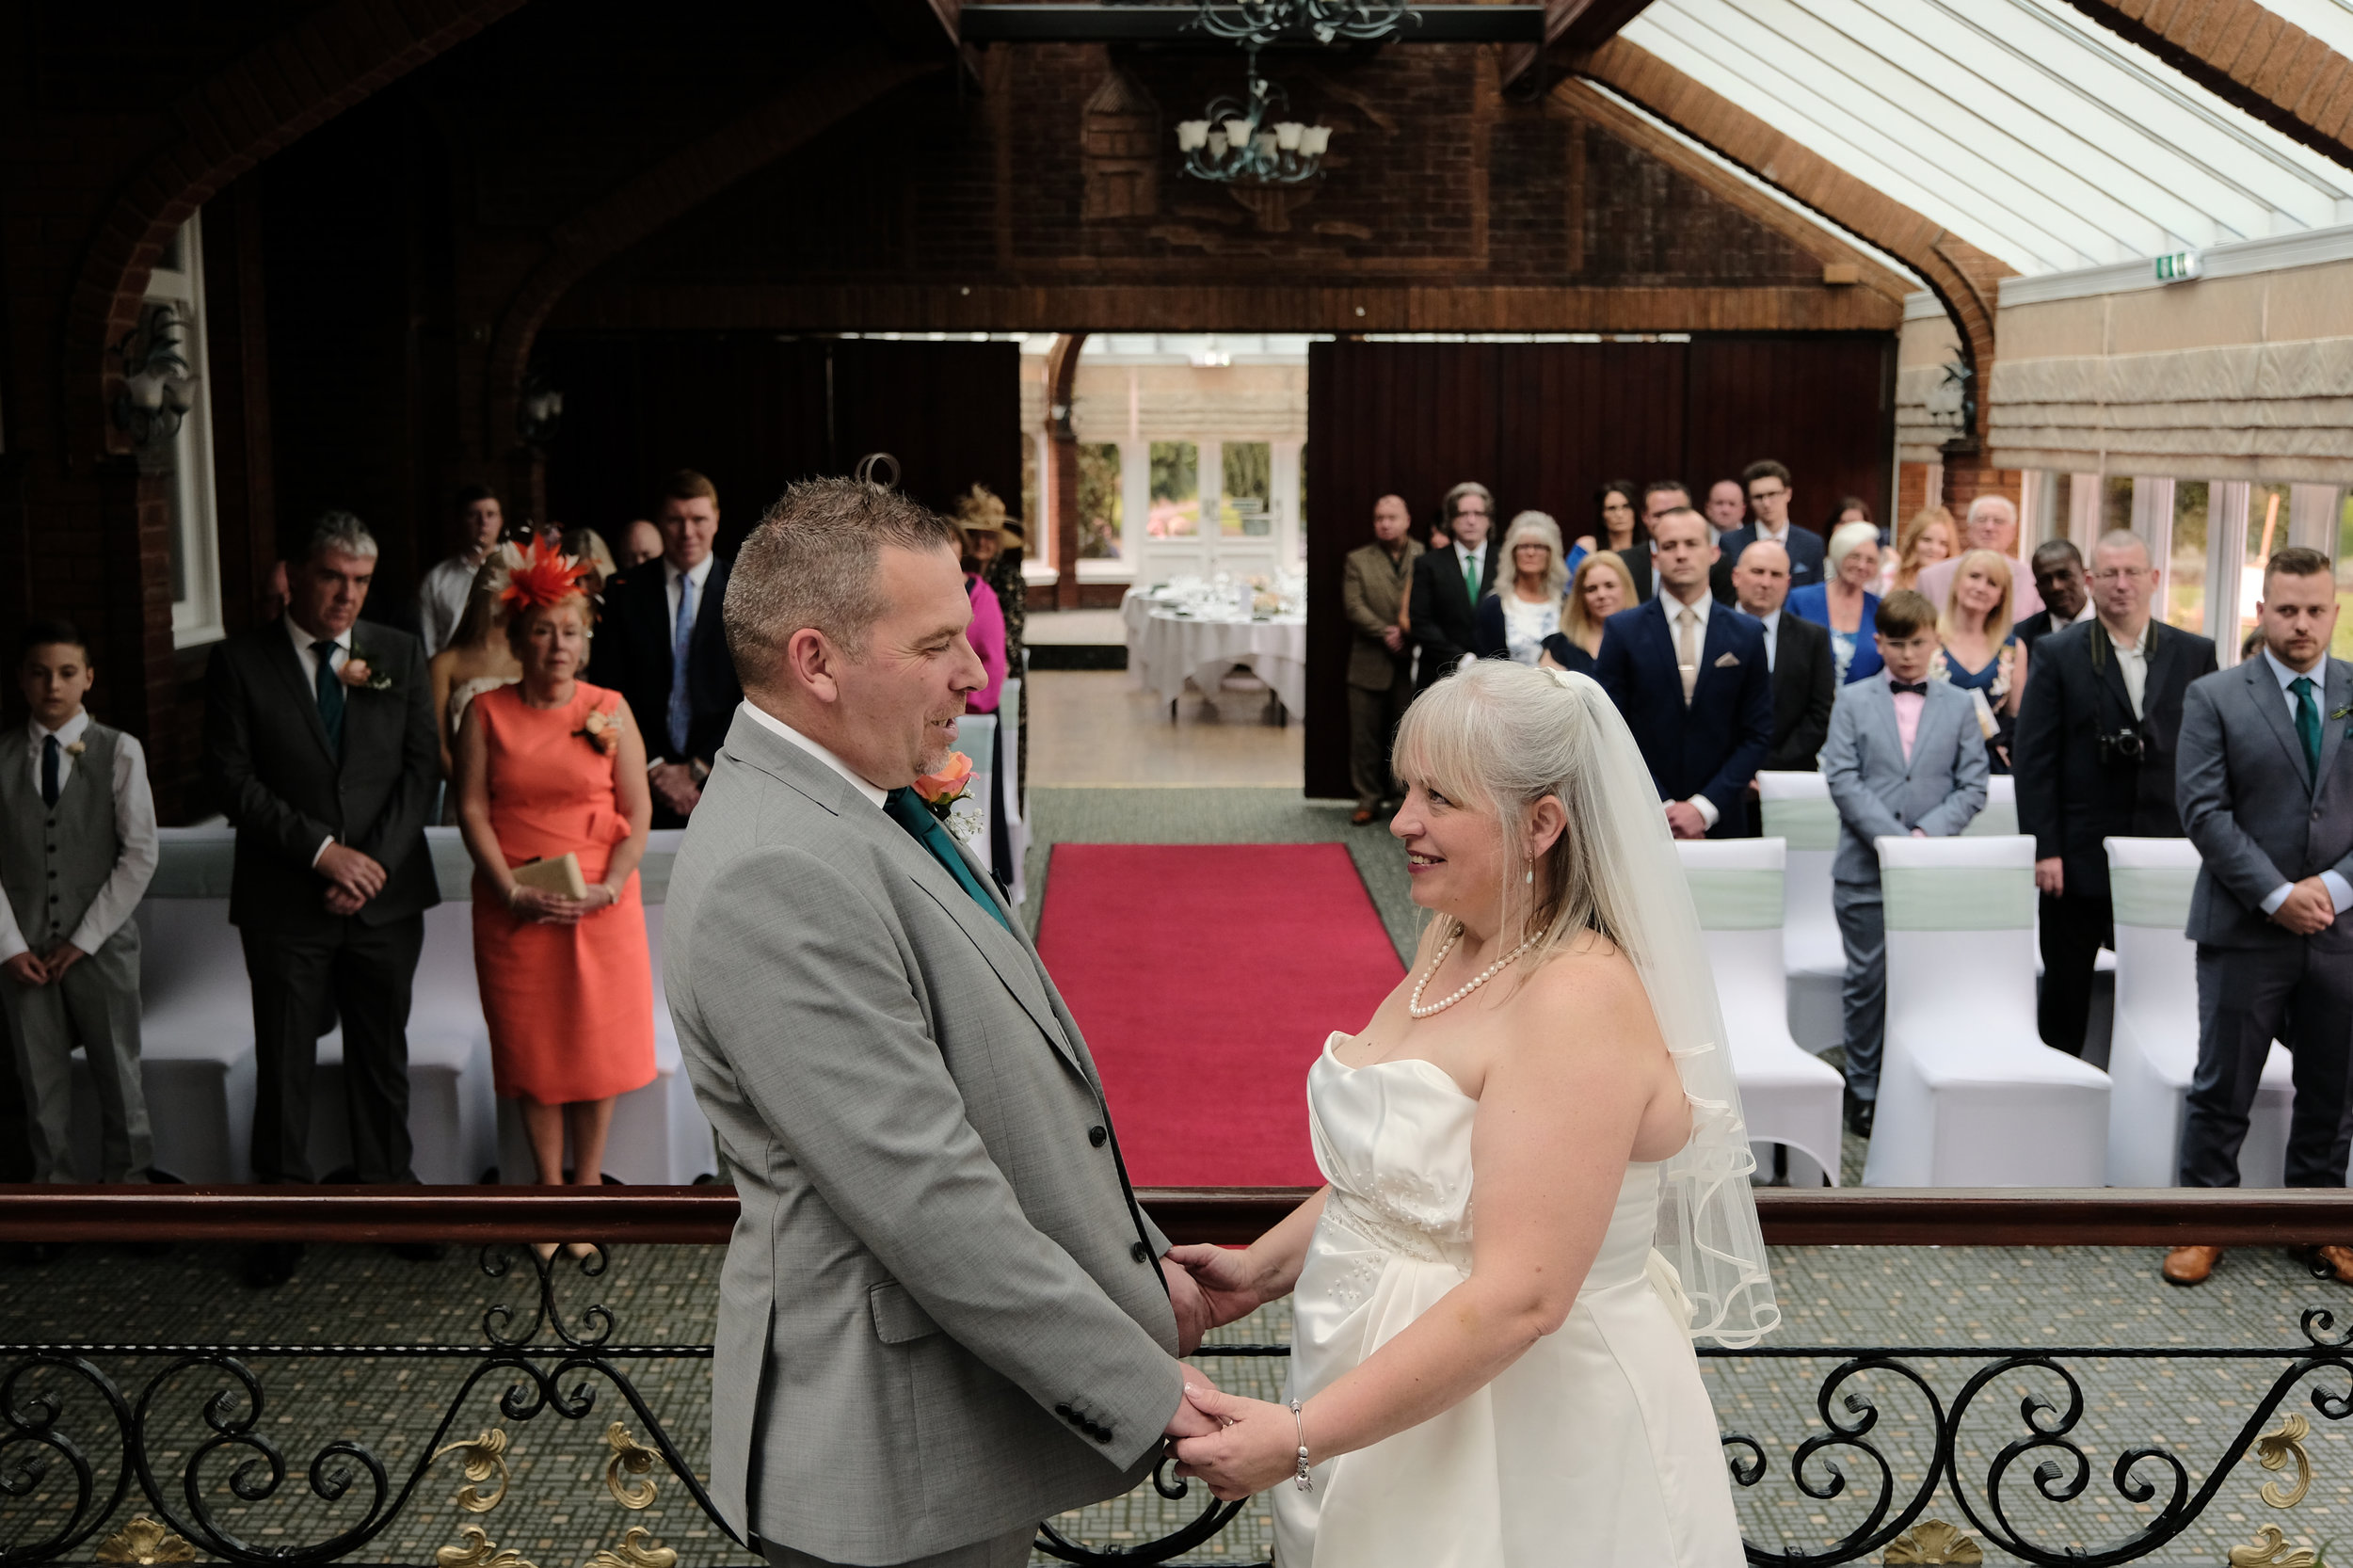 Warwickshire Wedding Photographer Ardencote Manor House 07 - married couple with guests.jpg